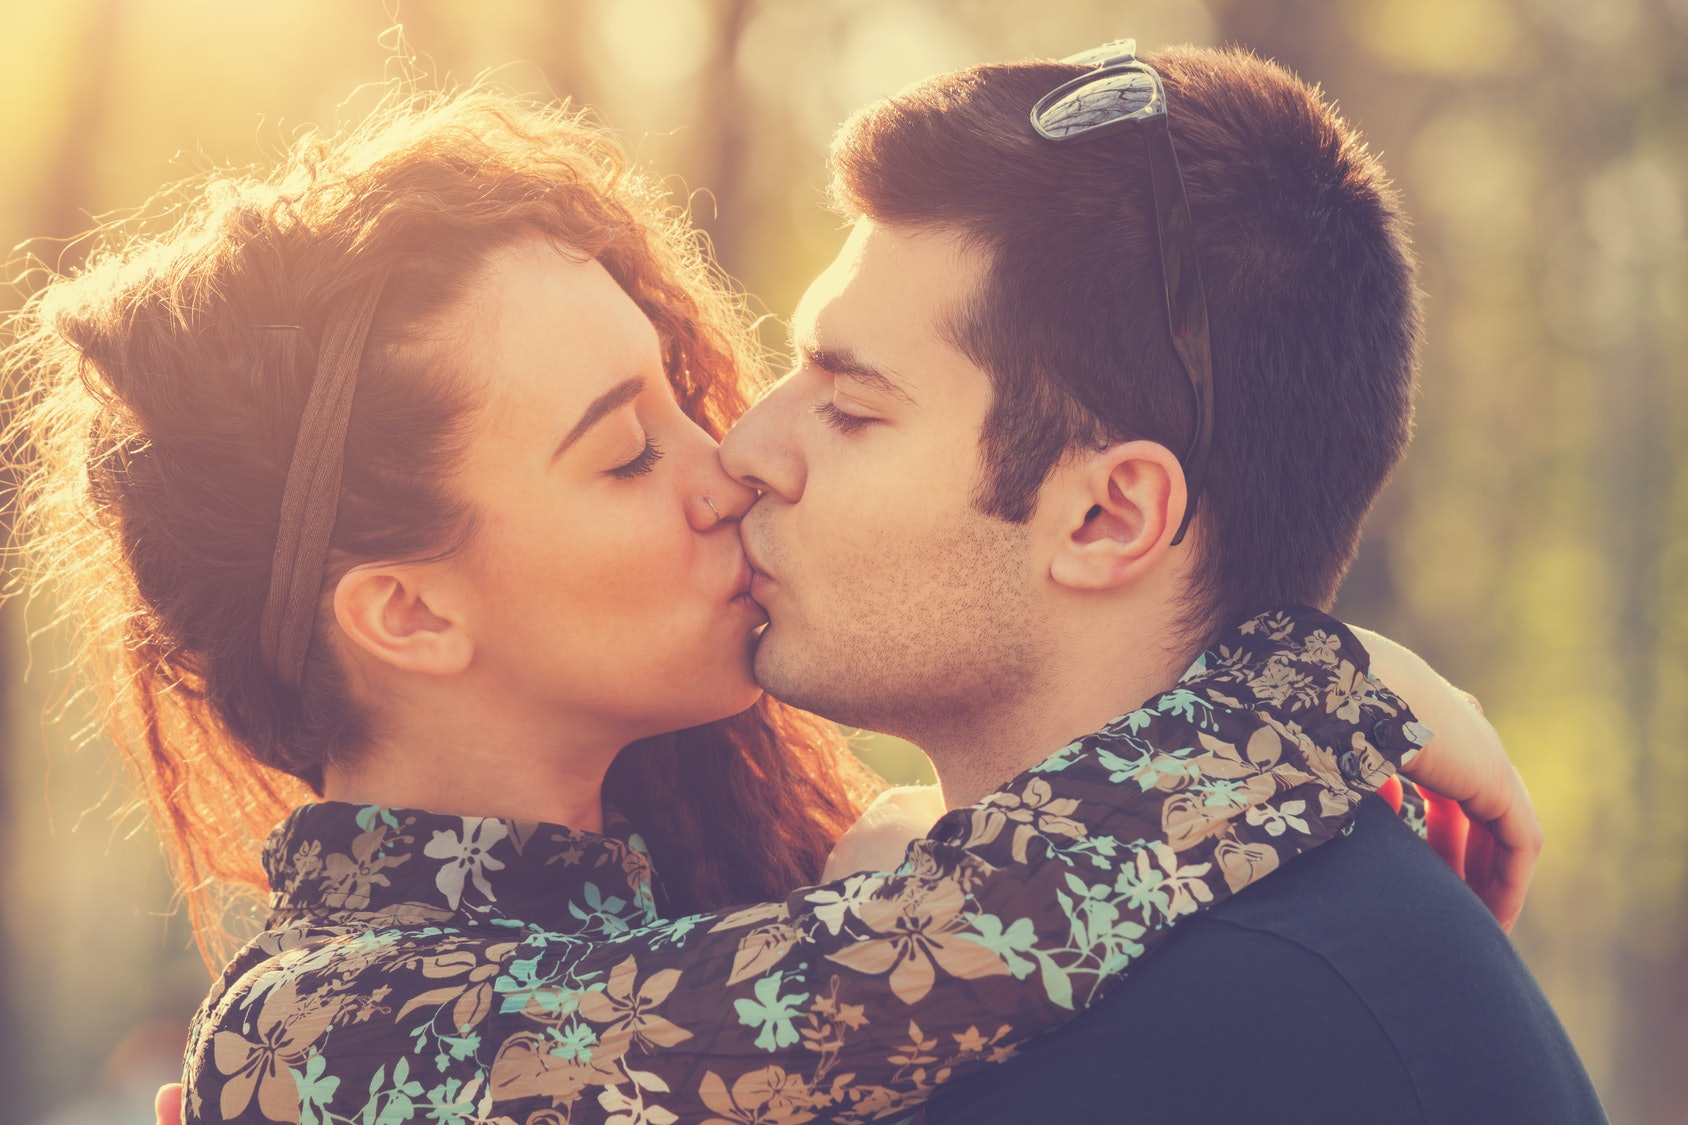 Watch How to be a better kisser according to science video